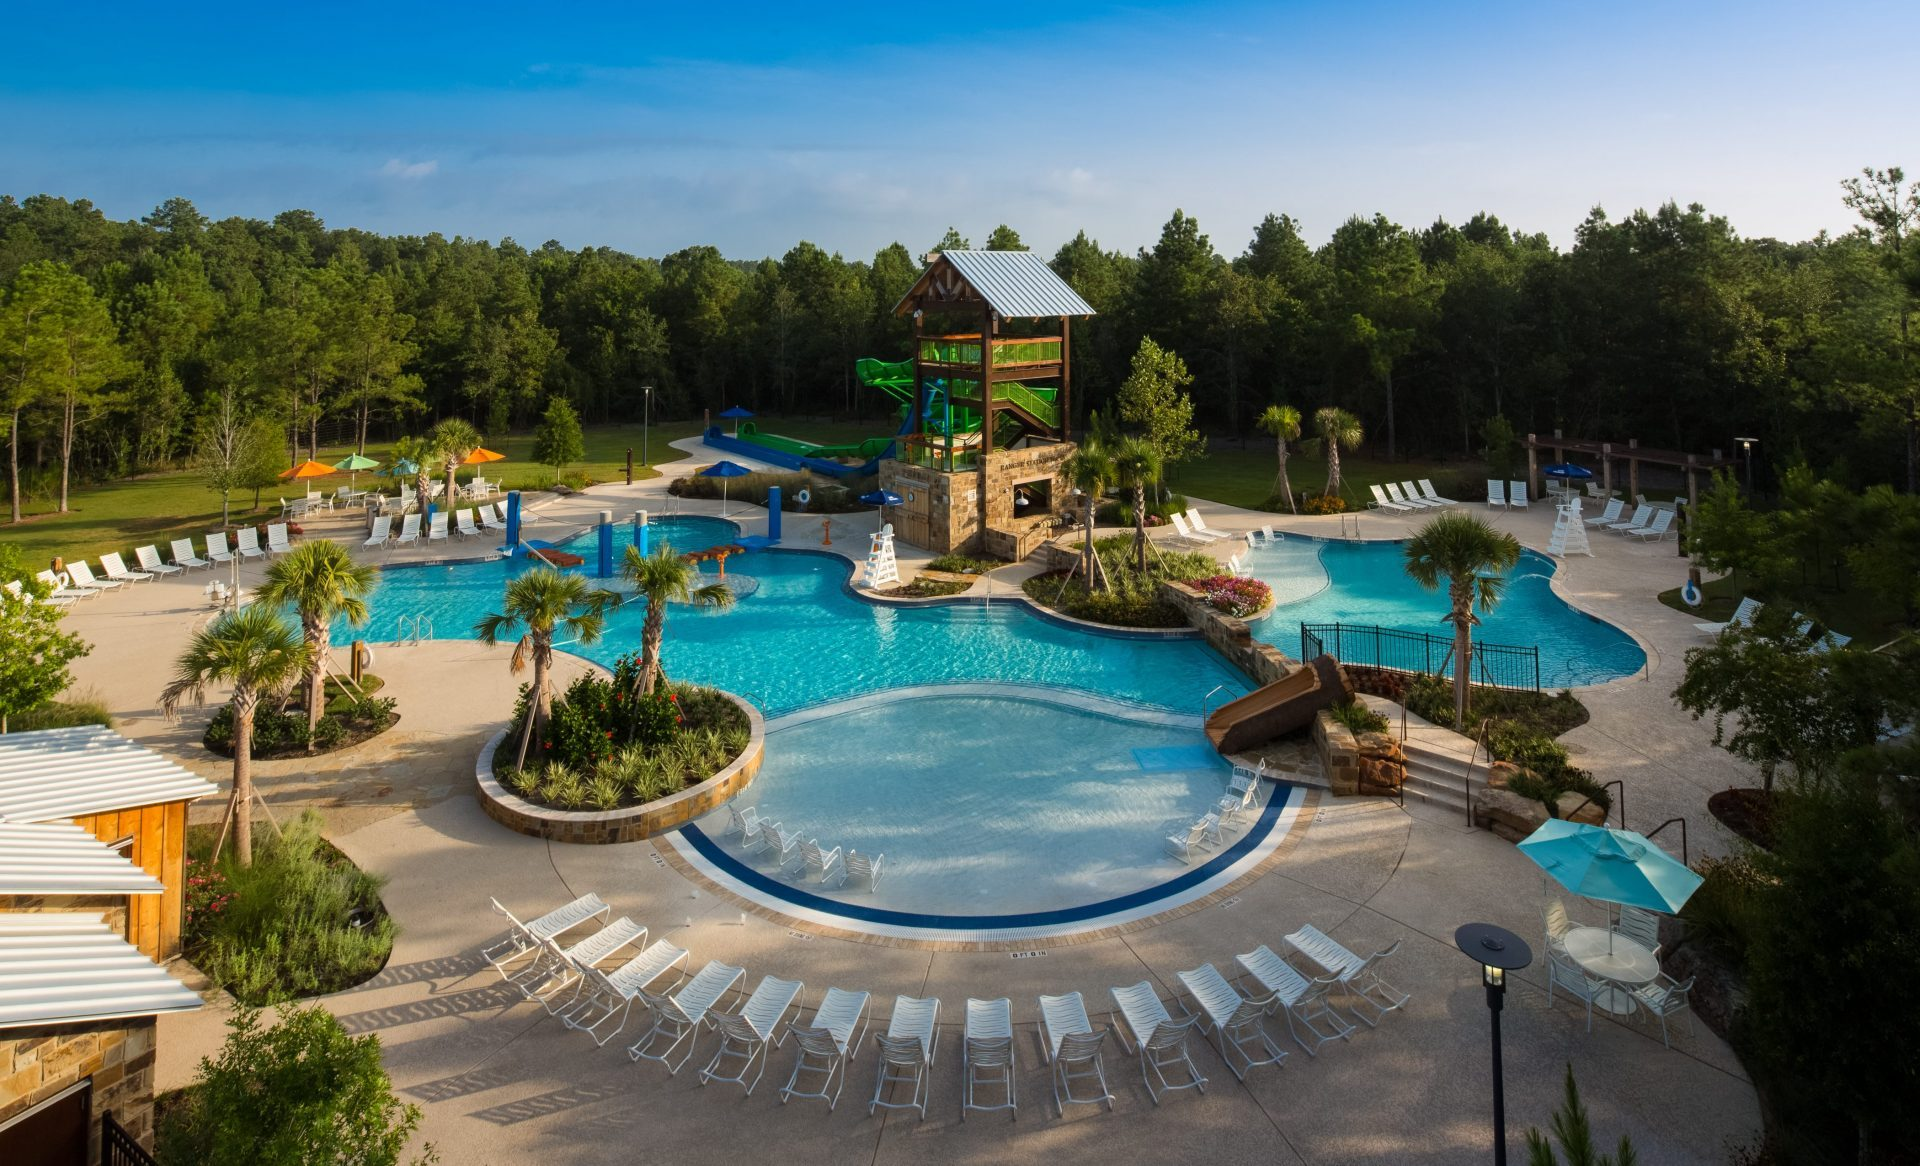 Woodforest Forest Island Pool complex designed by Martin Aquatic offers lounge seating